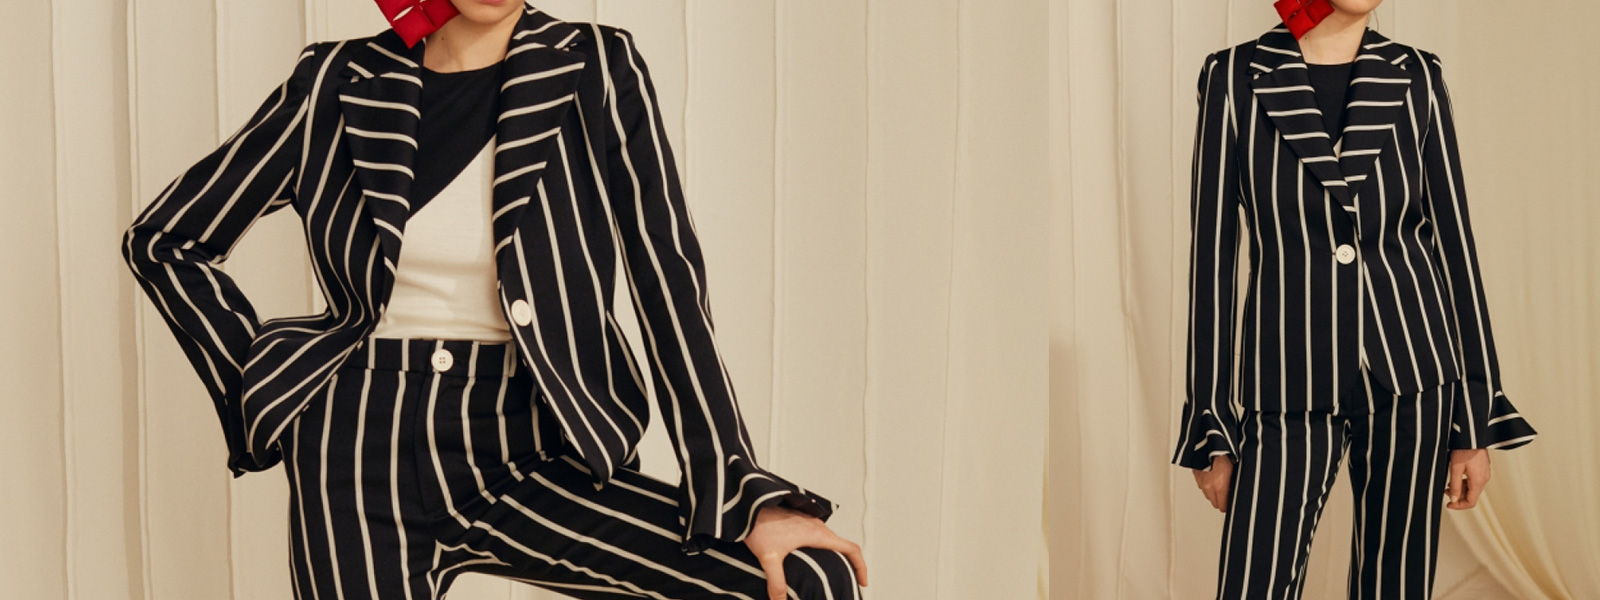 Statement Looks: Women's Power Suits